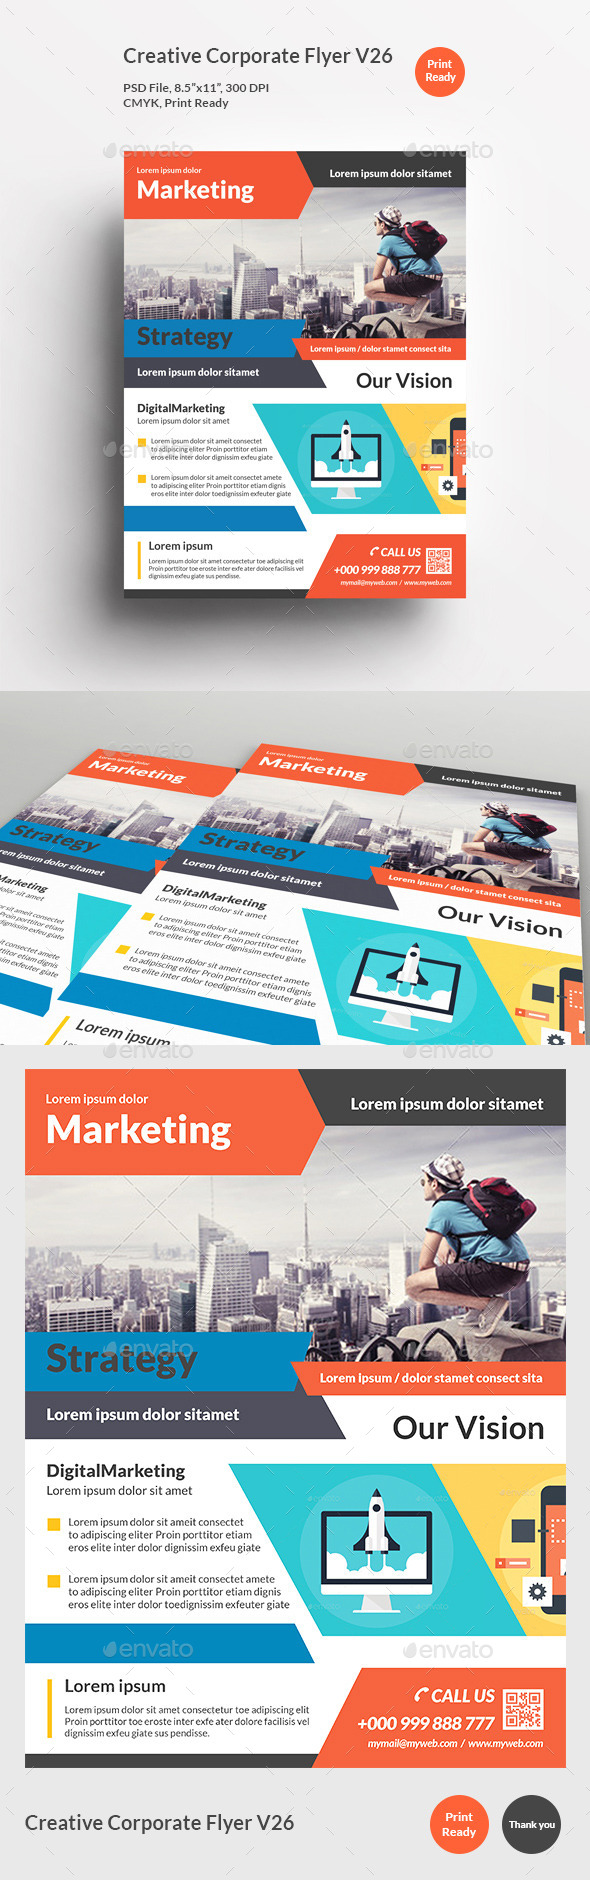 Creative Corporate Flyer V26 - Corporate Flyers